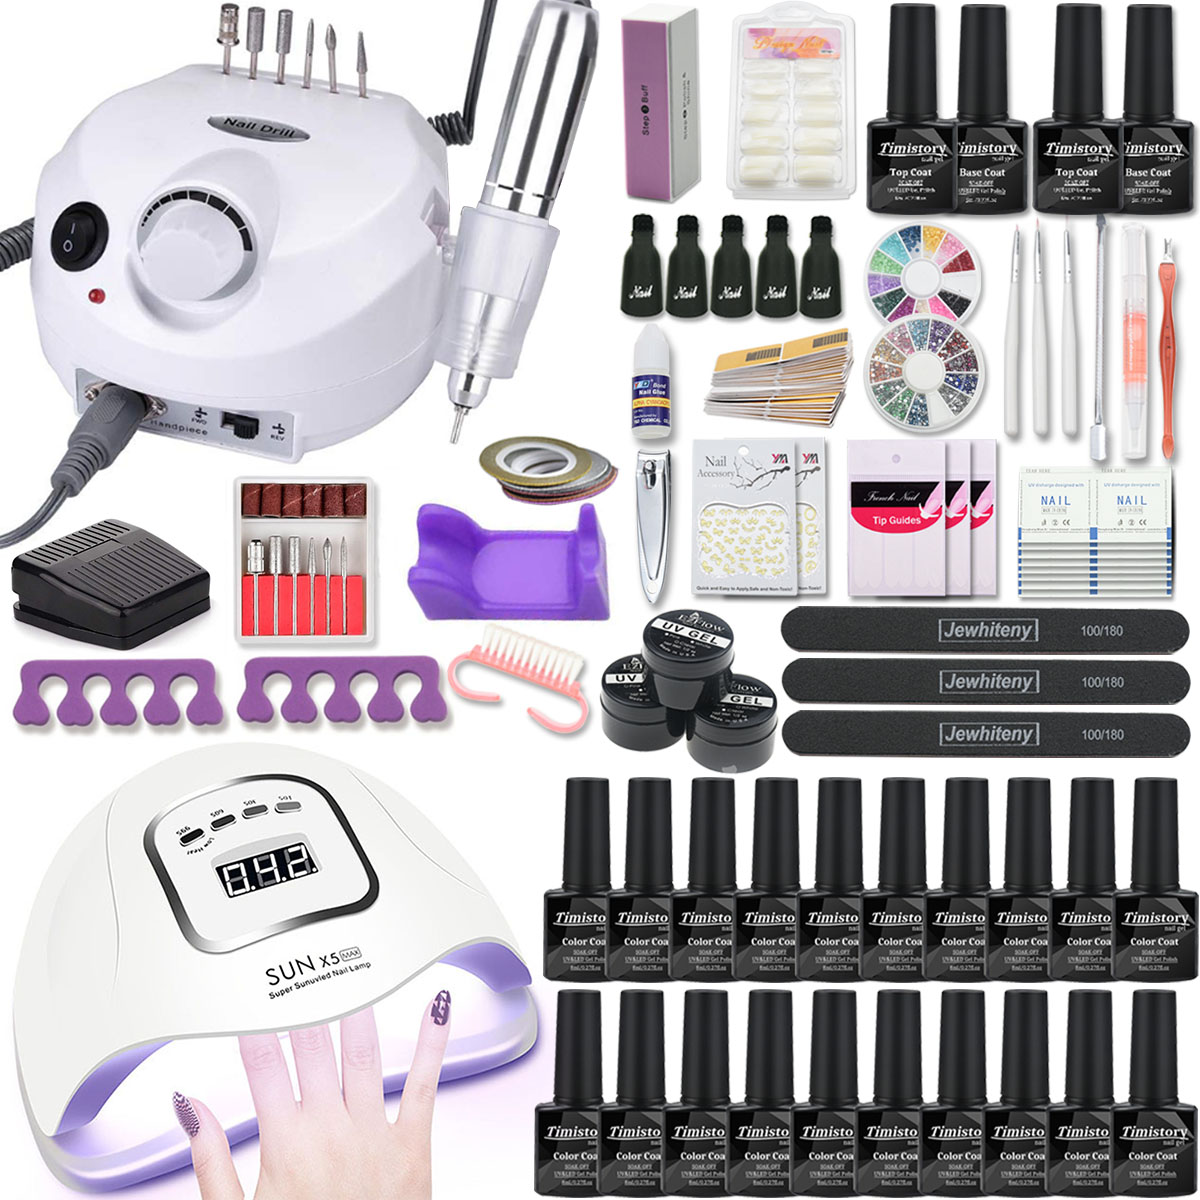 Manicure Set Nail Kit 80/54/36W UV Led Lamp With 20PCS Gel Varnish Set Nail Drill Machine Nail Art Tool Set Top Base Coat